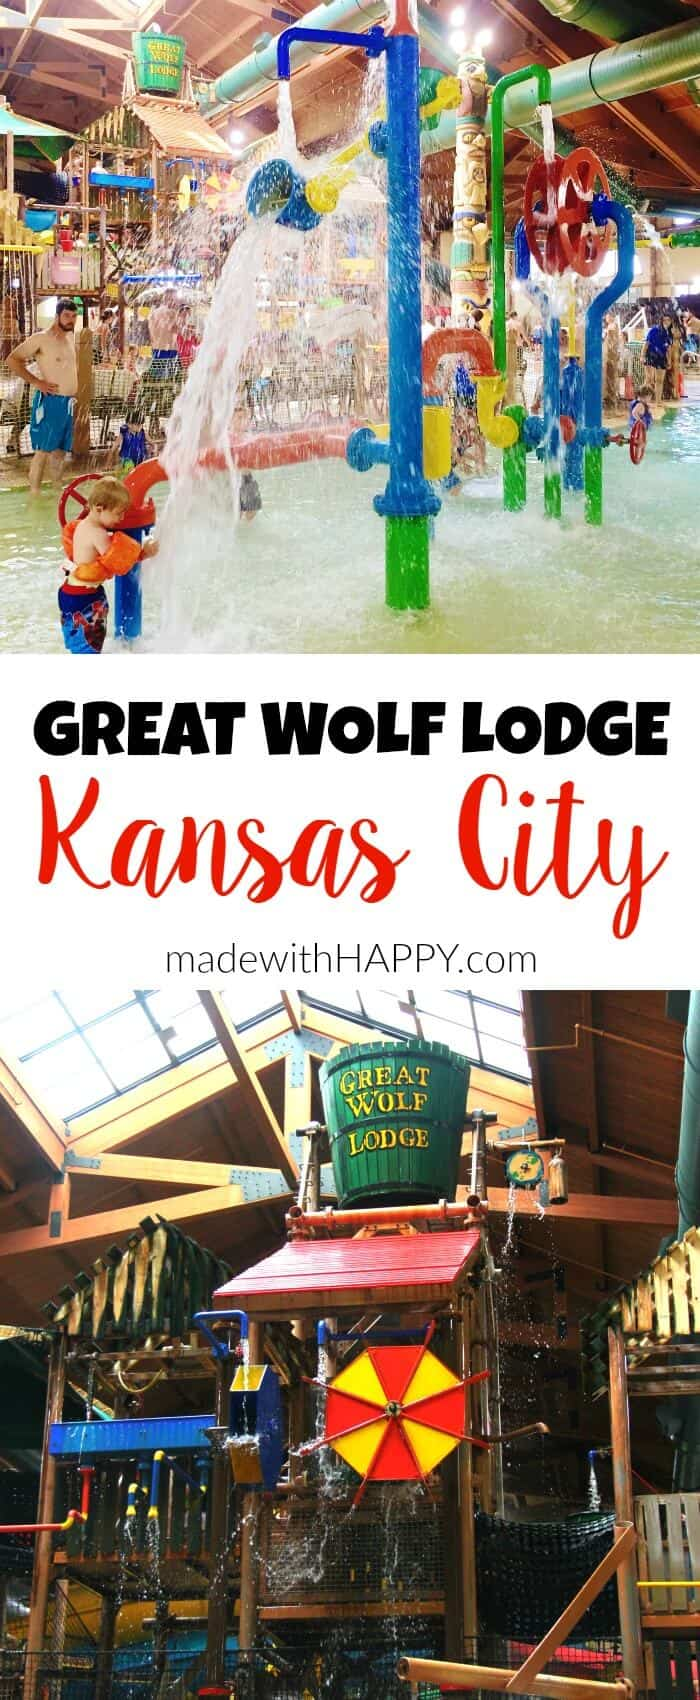 Great Wolf Lodge Kansas City Made With Happy